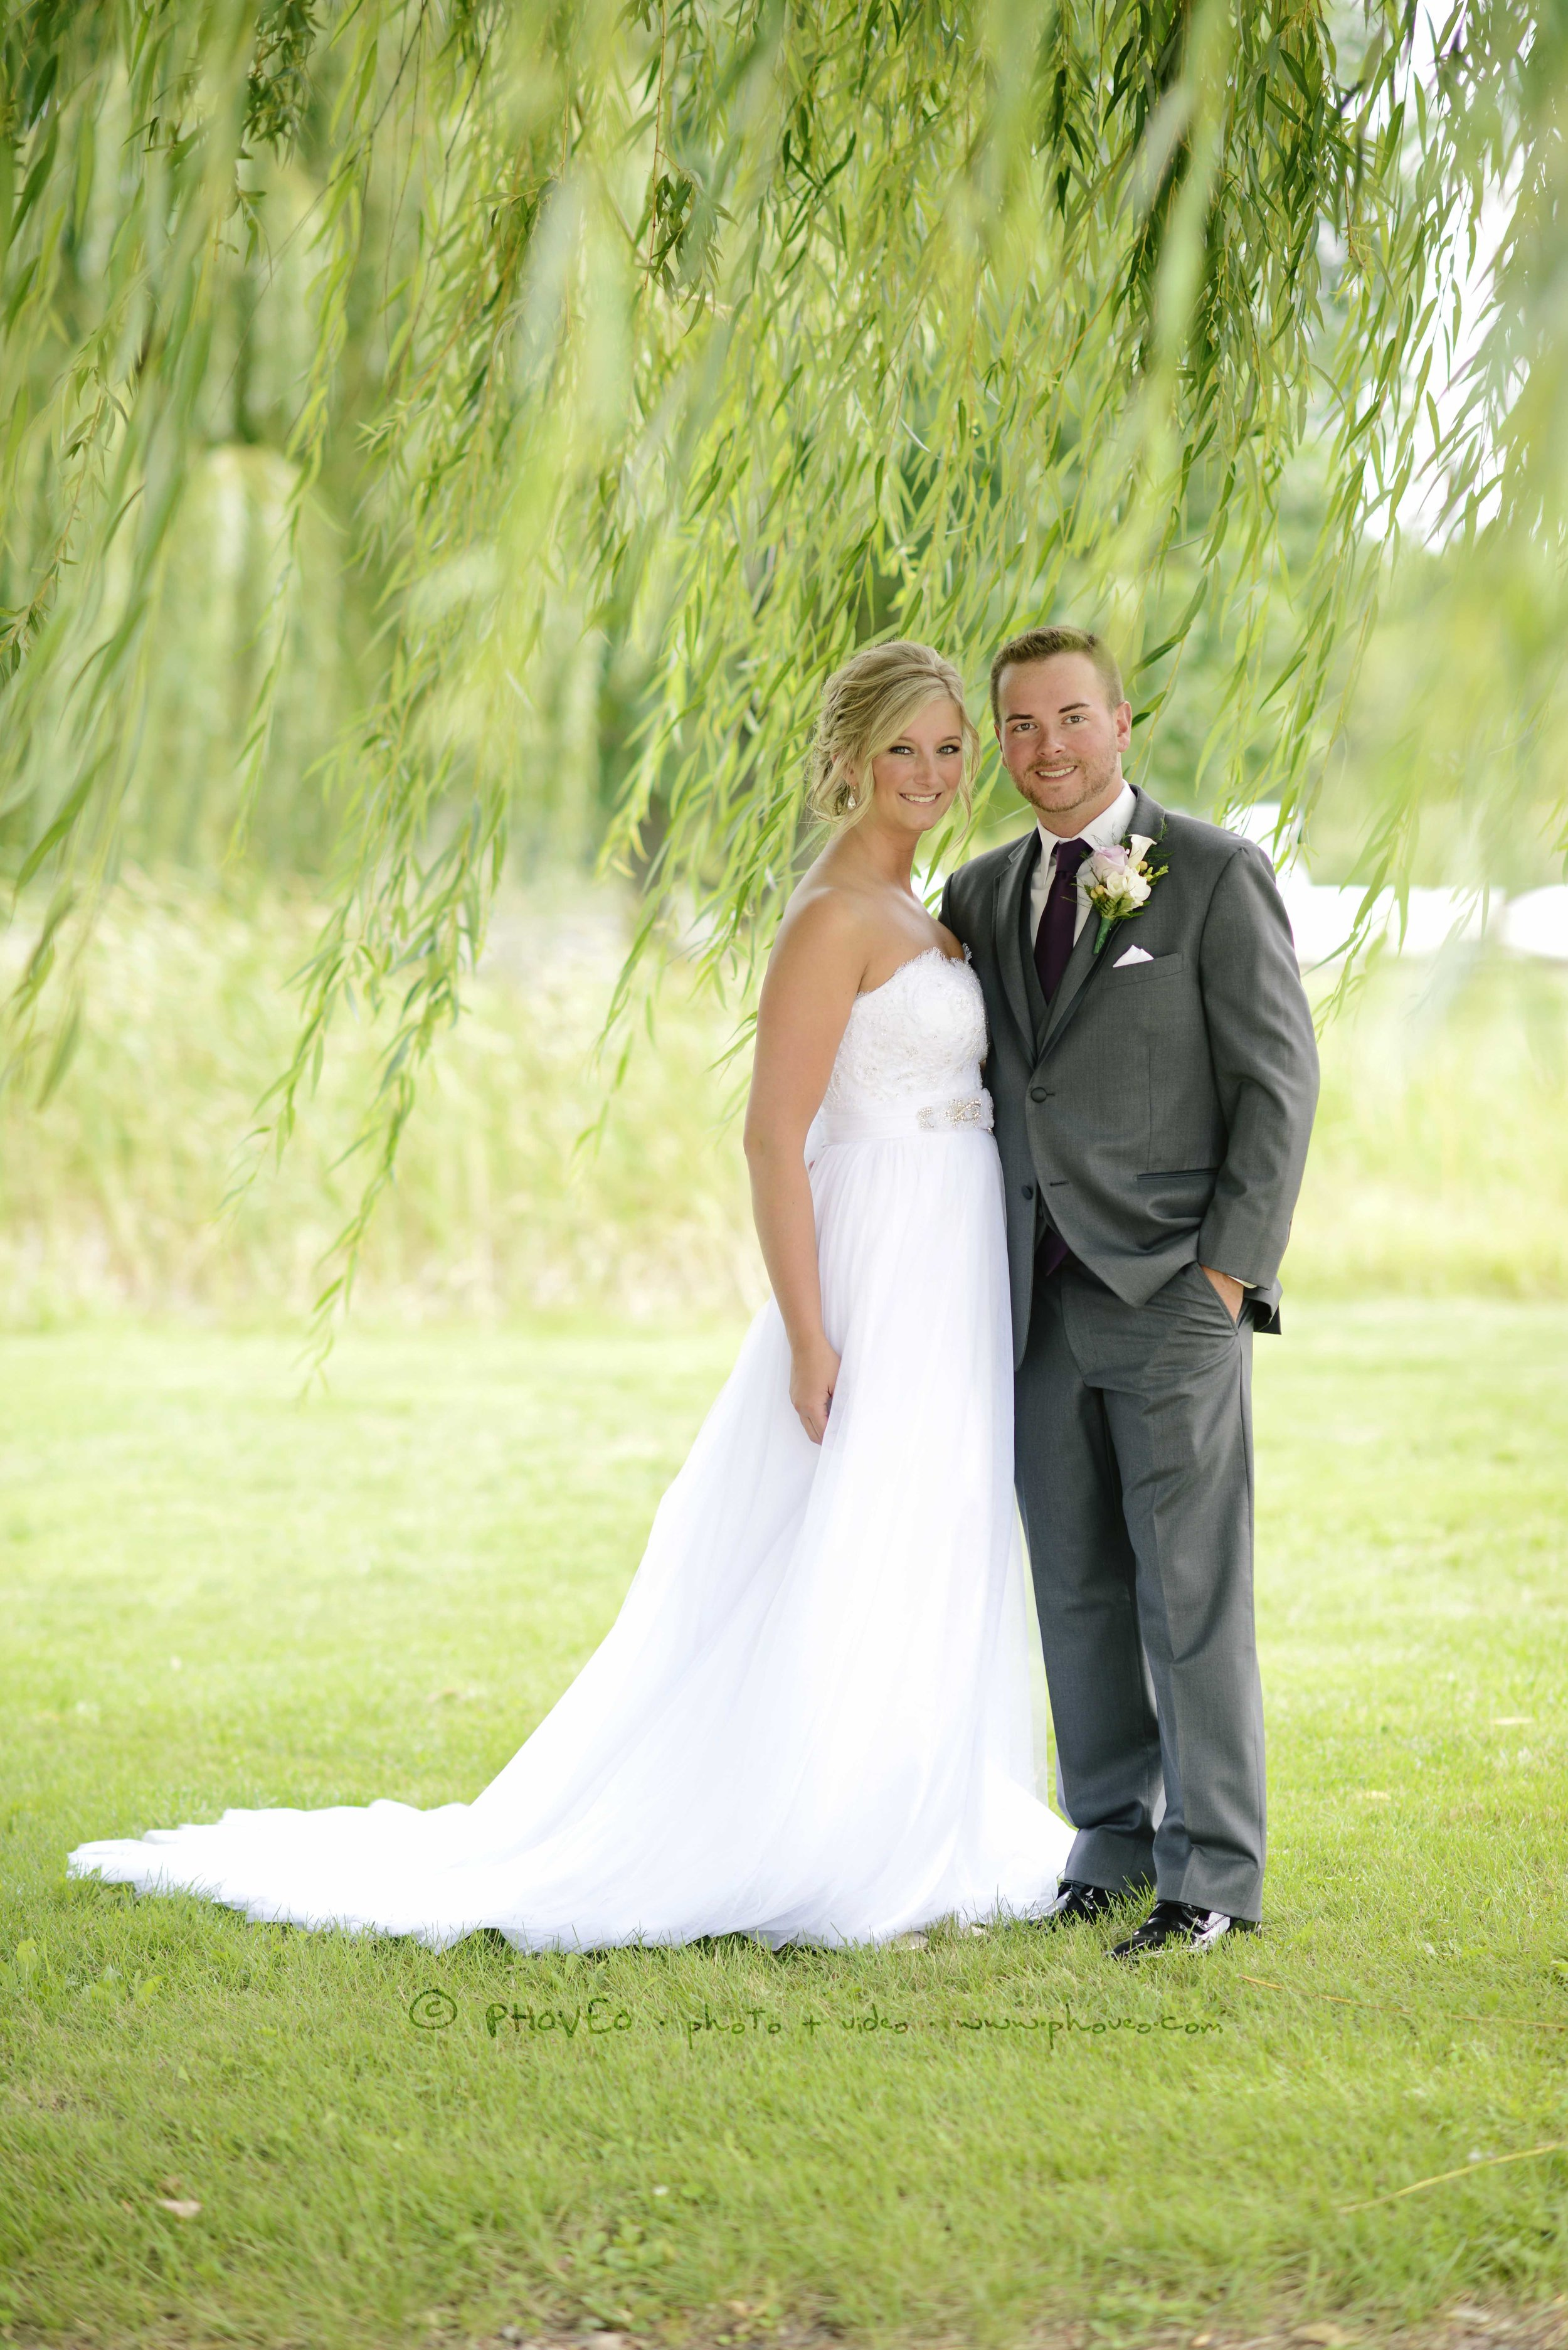 WM_20160826_Katelyn+Tony_131.jpg